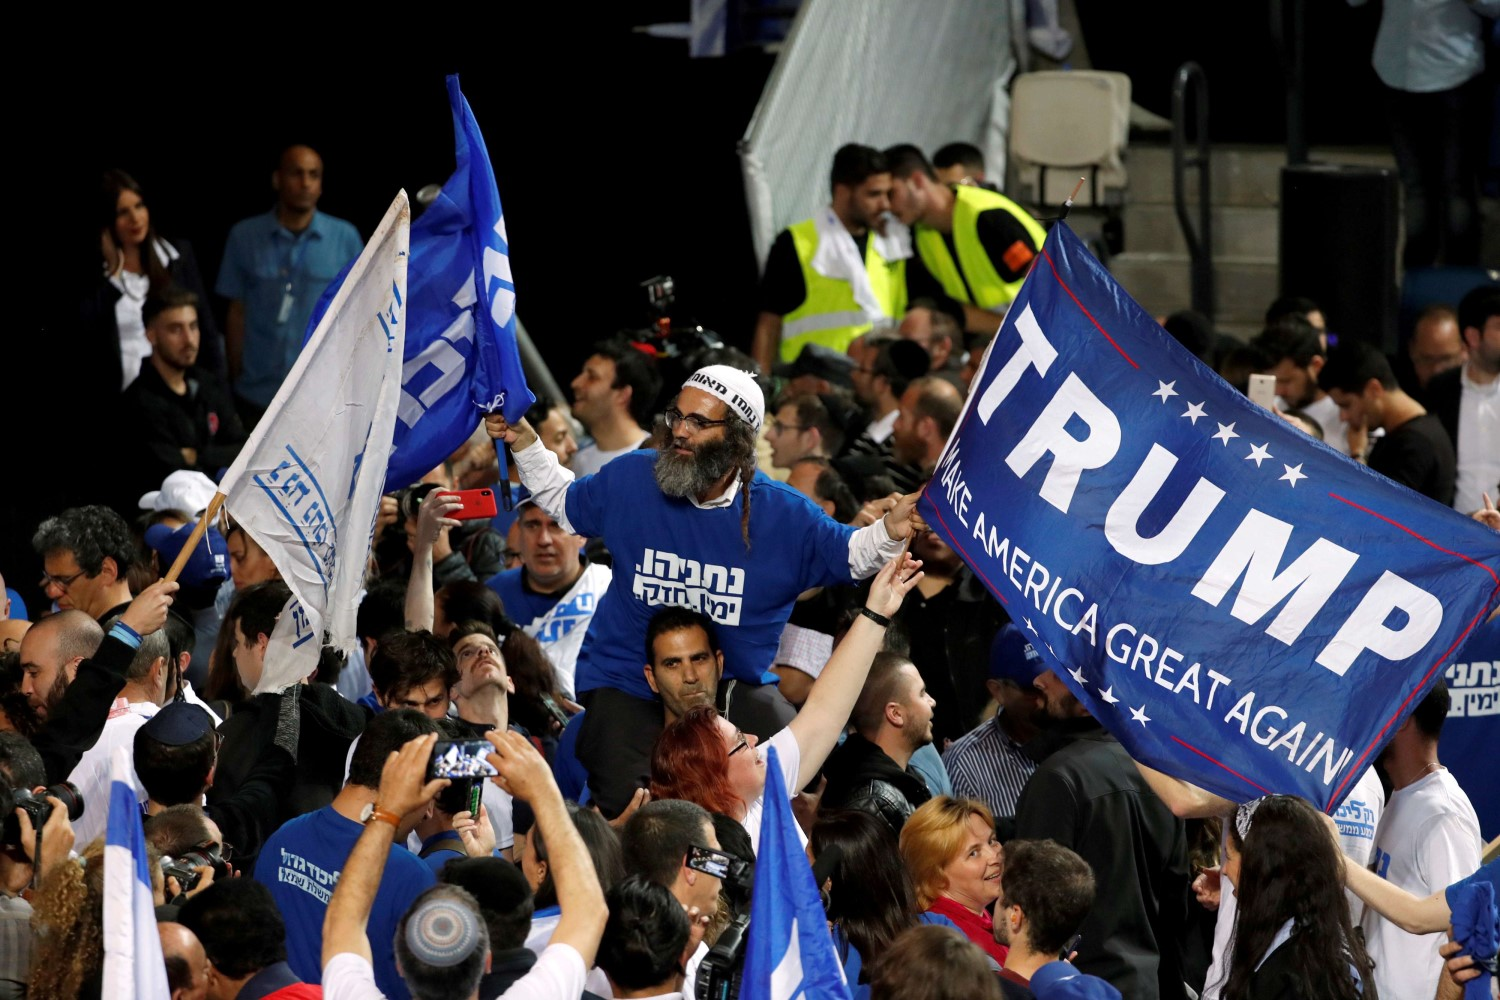 A supporter of Israeli Prime Minister Benjamin Netanyahu's Likud party waves flags as the crowd reacts to exit polls in Israel's parliamentary election at the party headquarters in Tel Aviv, Israel April 10, 2019. (Reuters)